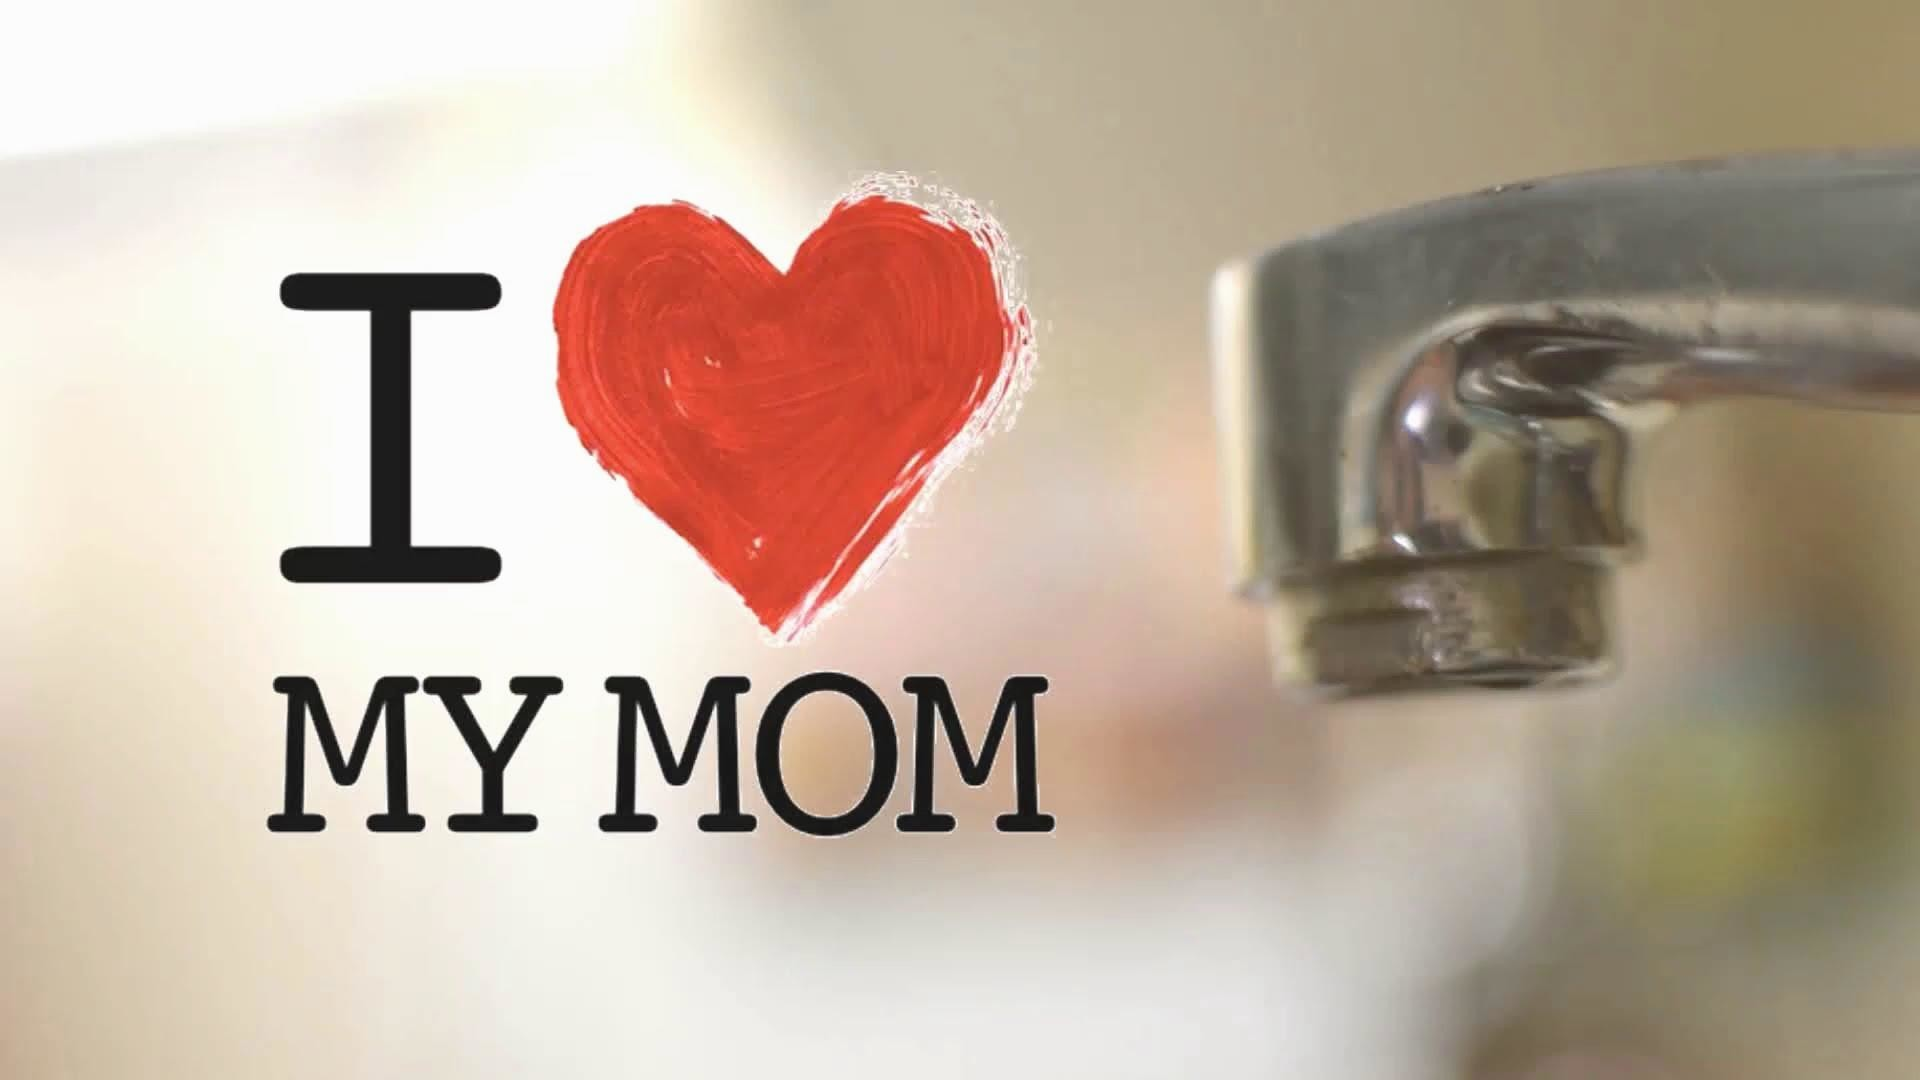 I-Love-You-Mom-HD-Pictures